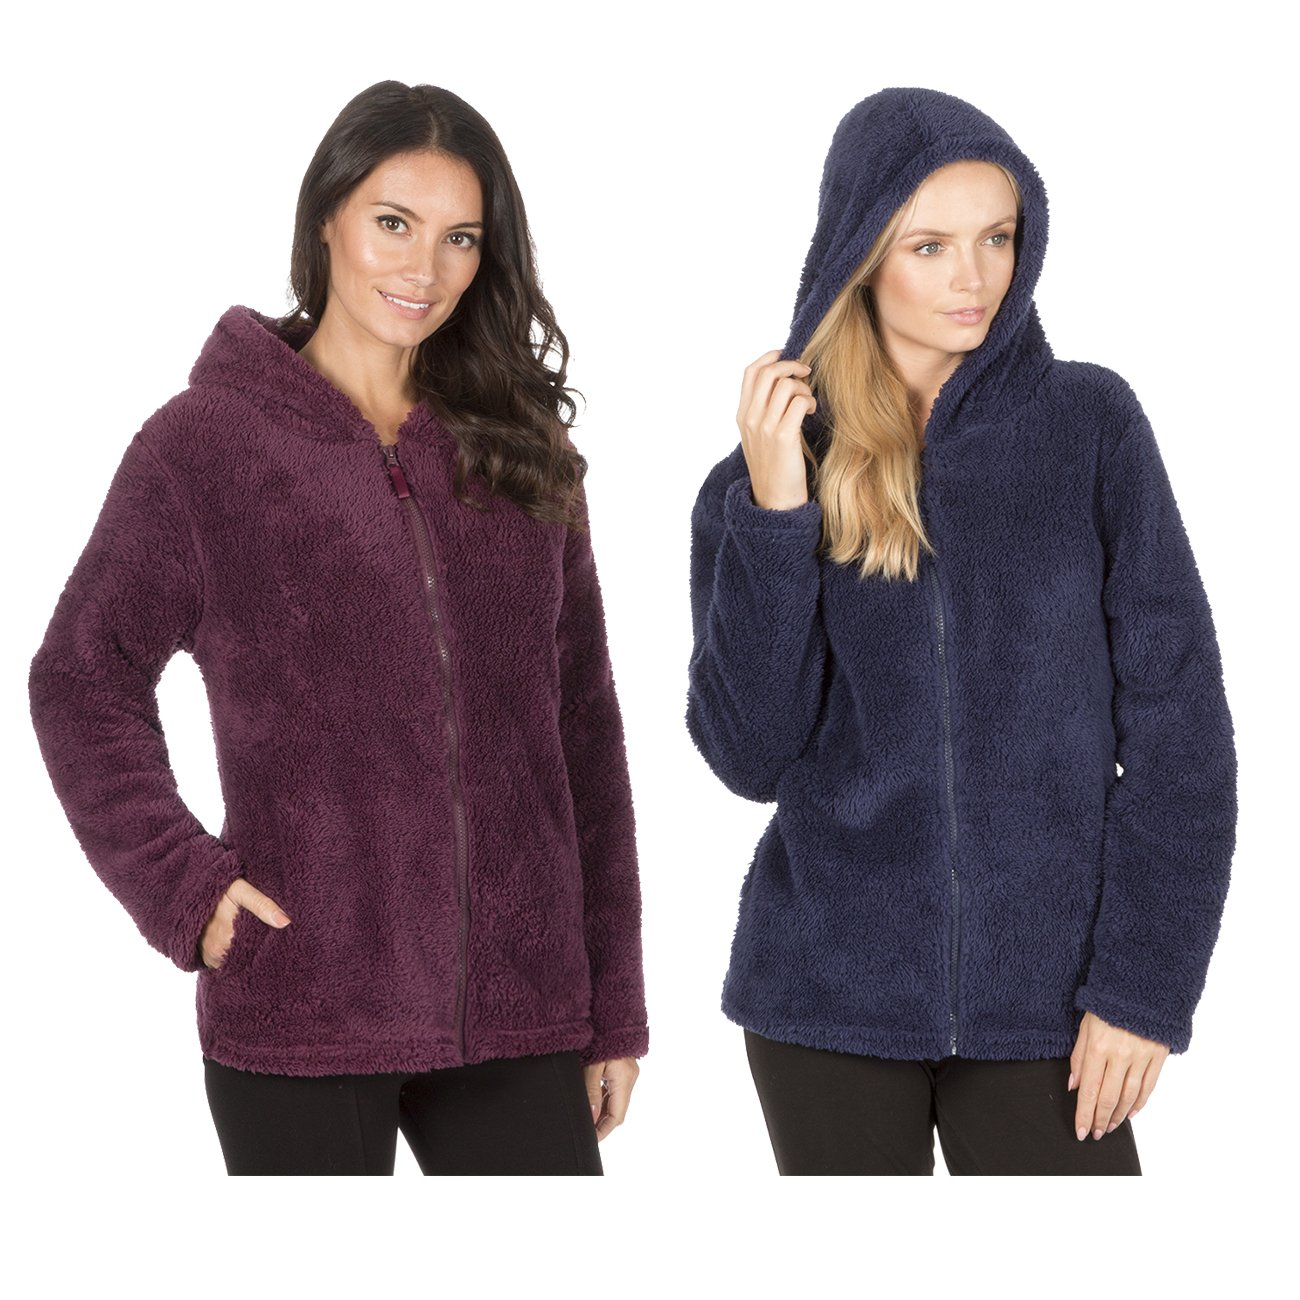 Forever Dreaming Womens Snuggle Fleece Bed Jacket - Zip Up Front Hooded Pyjama Top